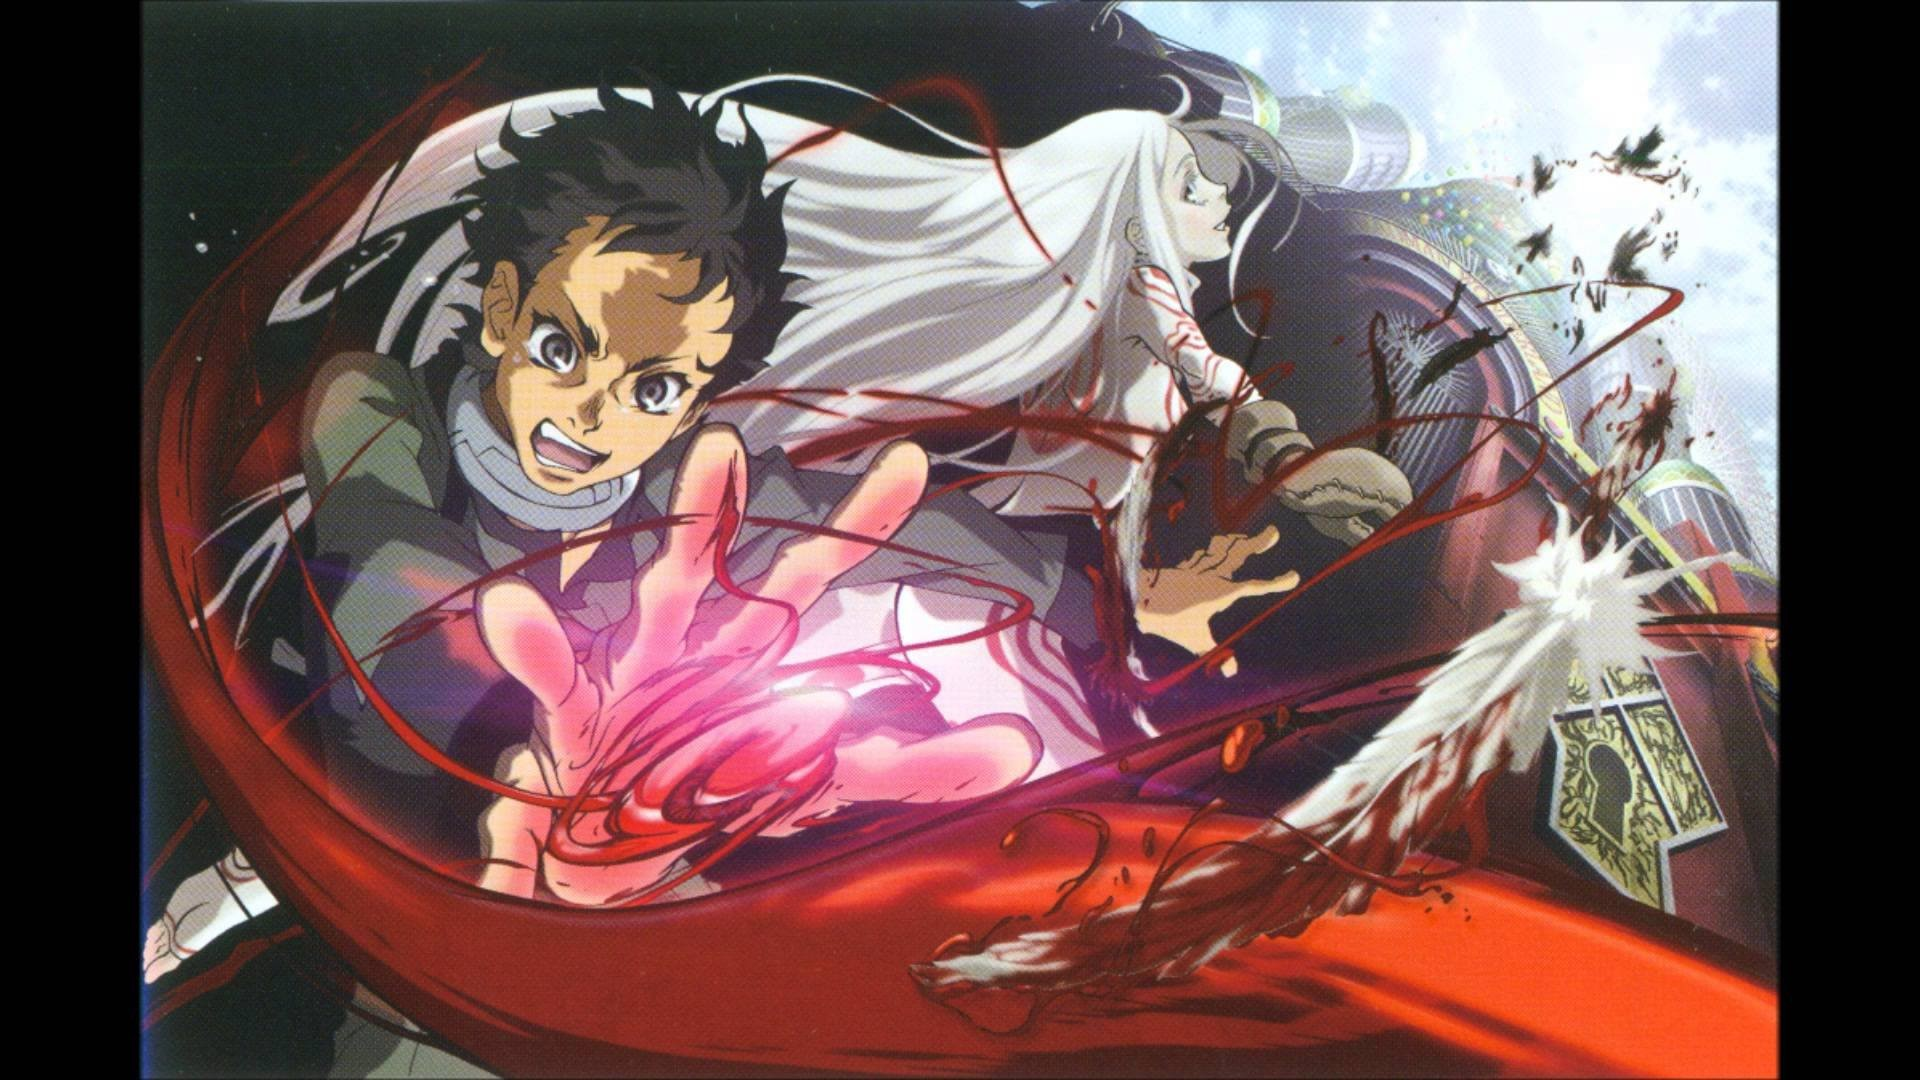 1920x1080 Deadman wonderland Shiro and Ganta wallpaper |  | 799990 |  WallpaperUP